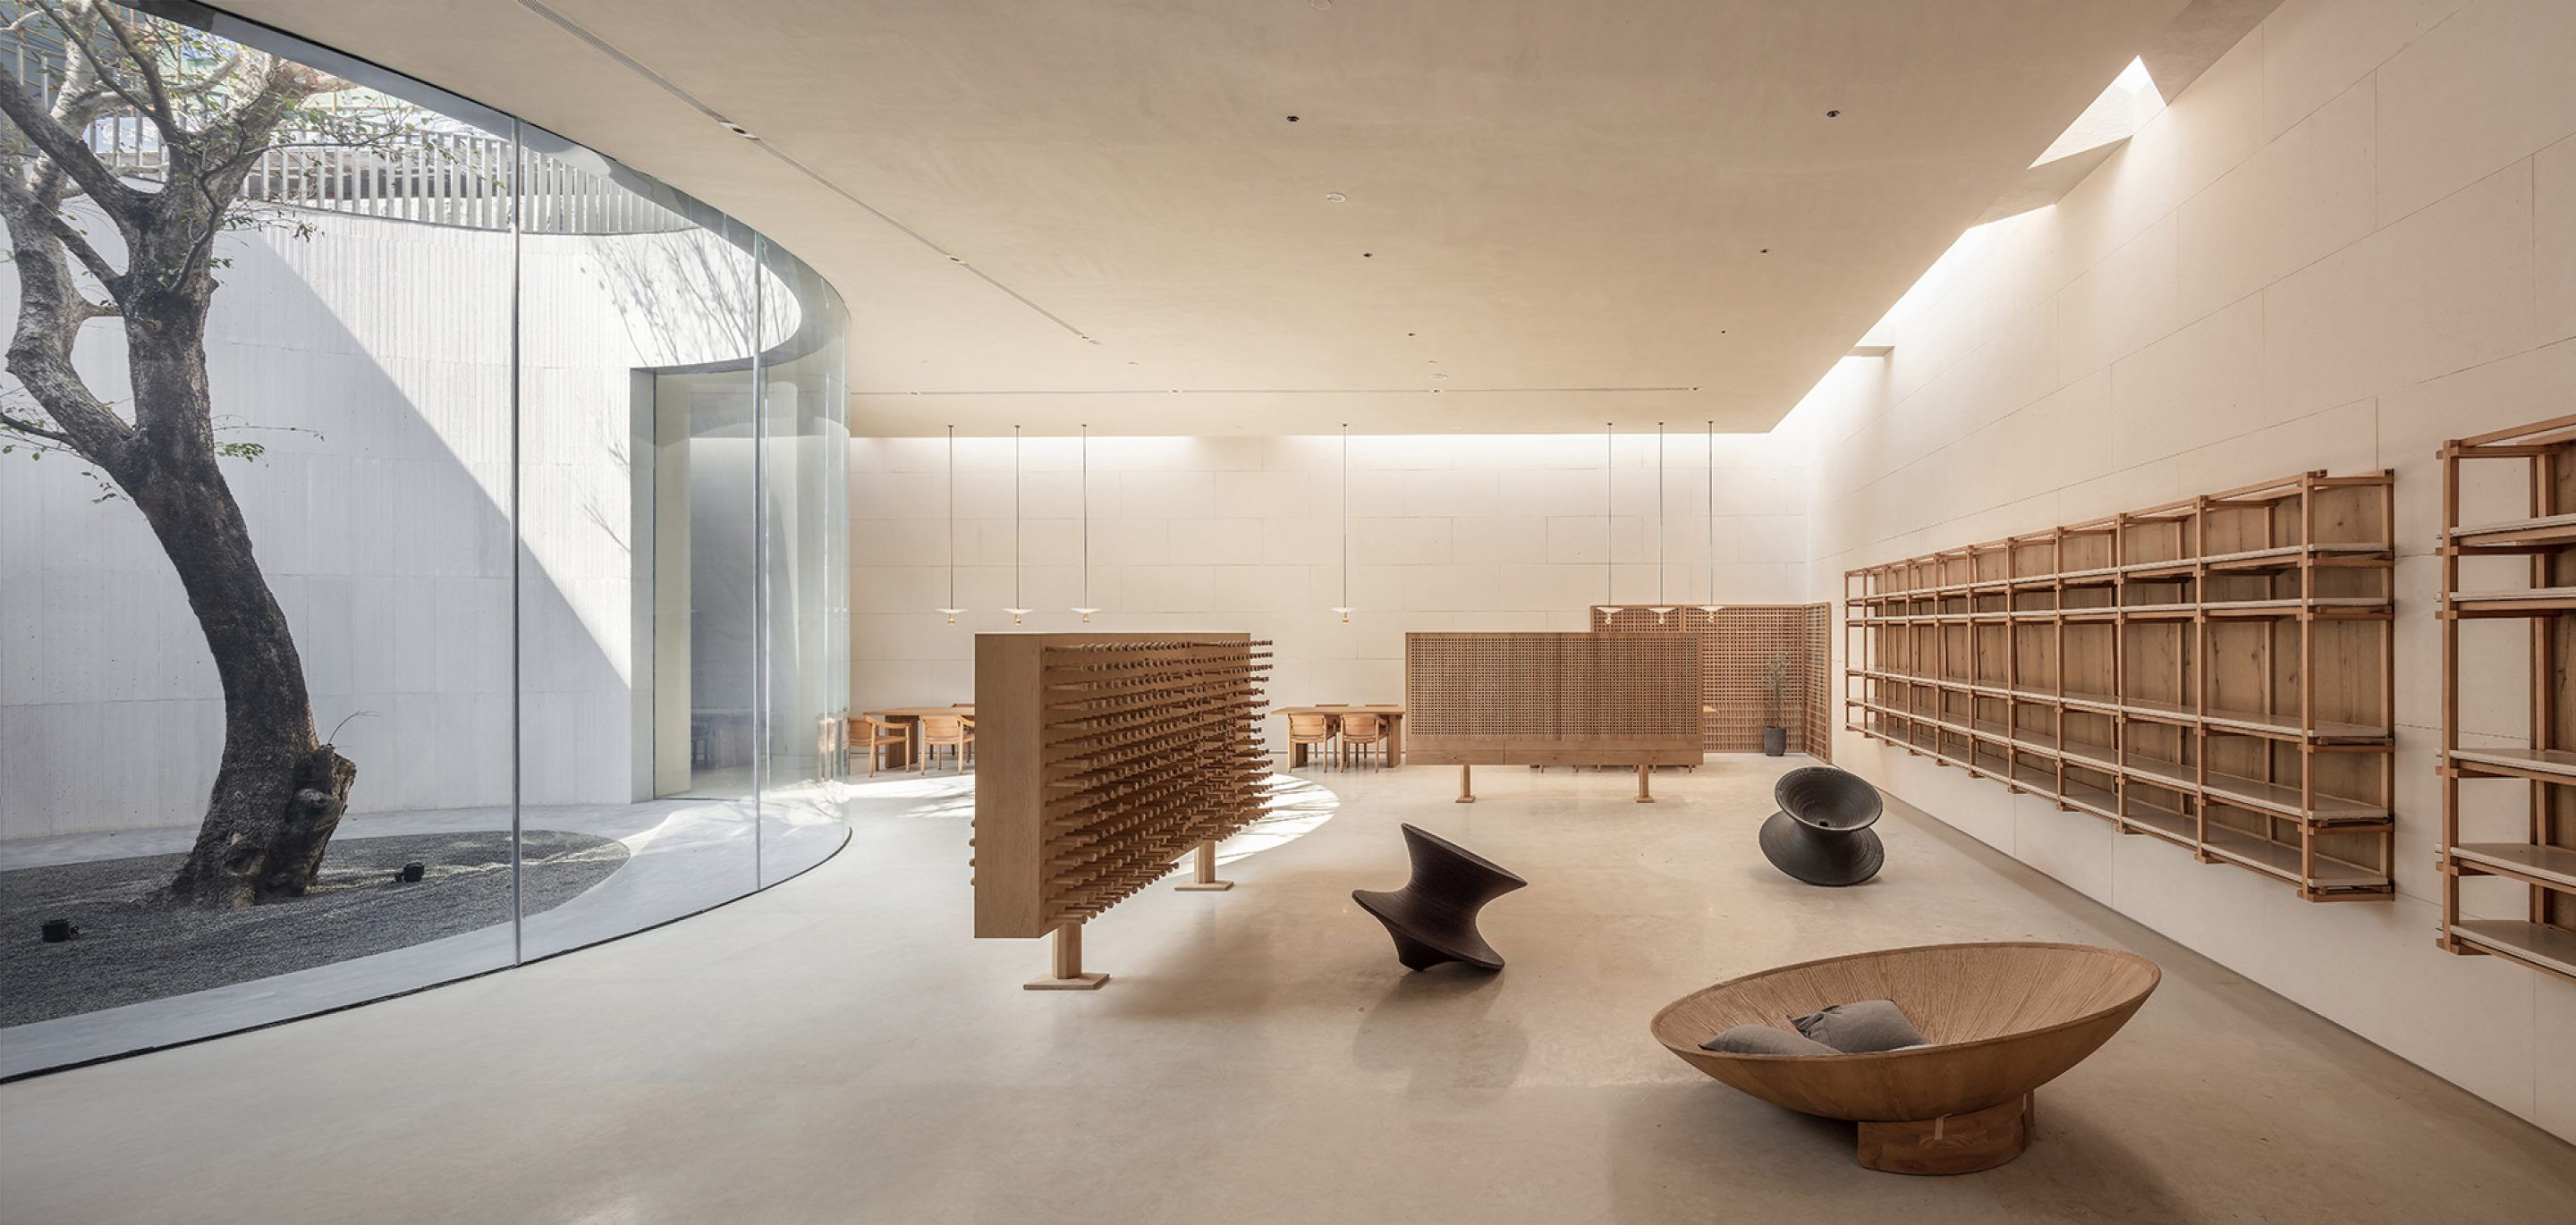 IGNANT-Architecture-Tea-Community-Centre-11